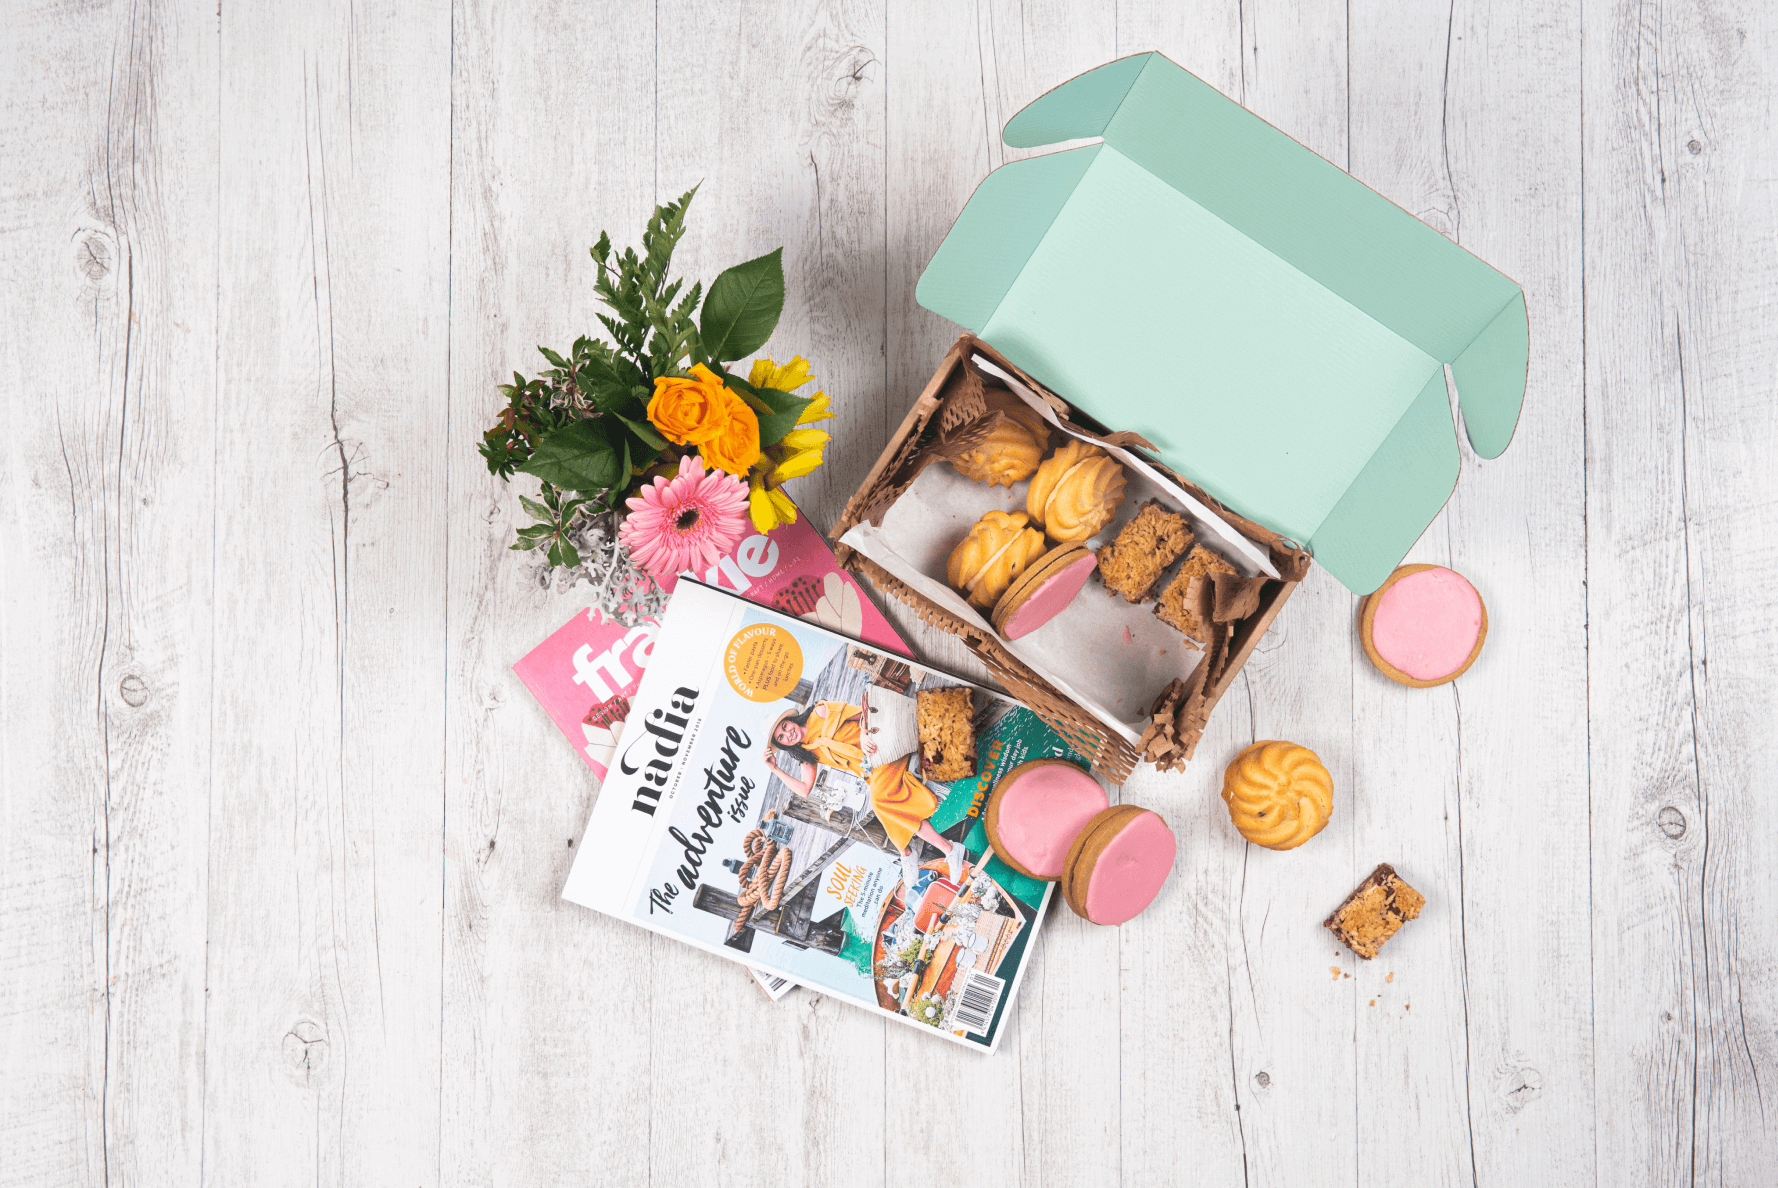 home baked baking subscription boxes